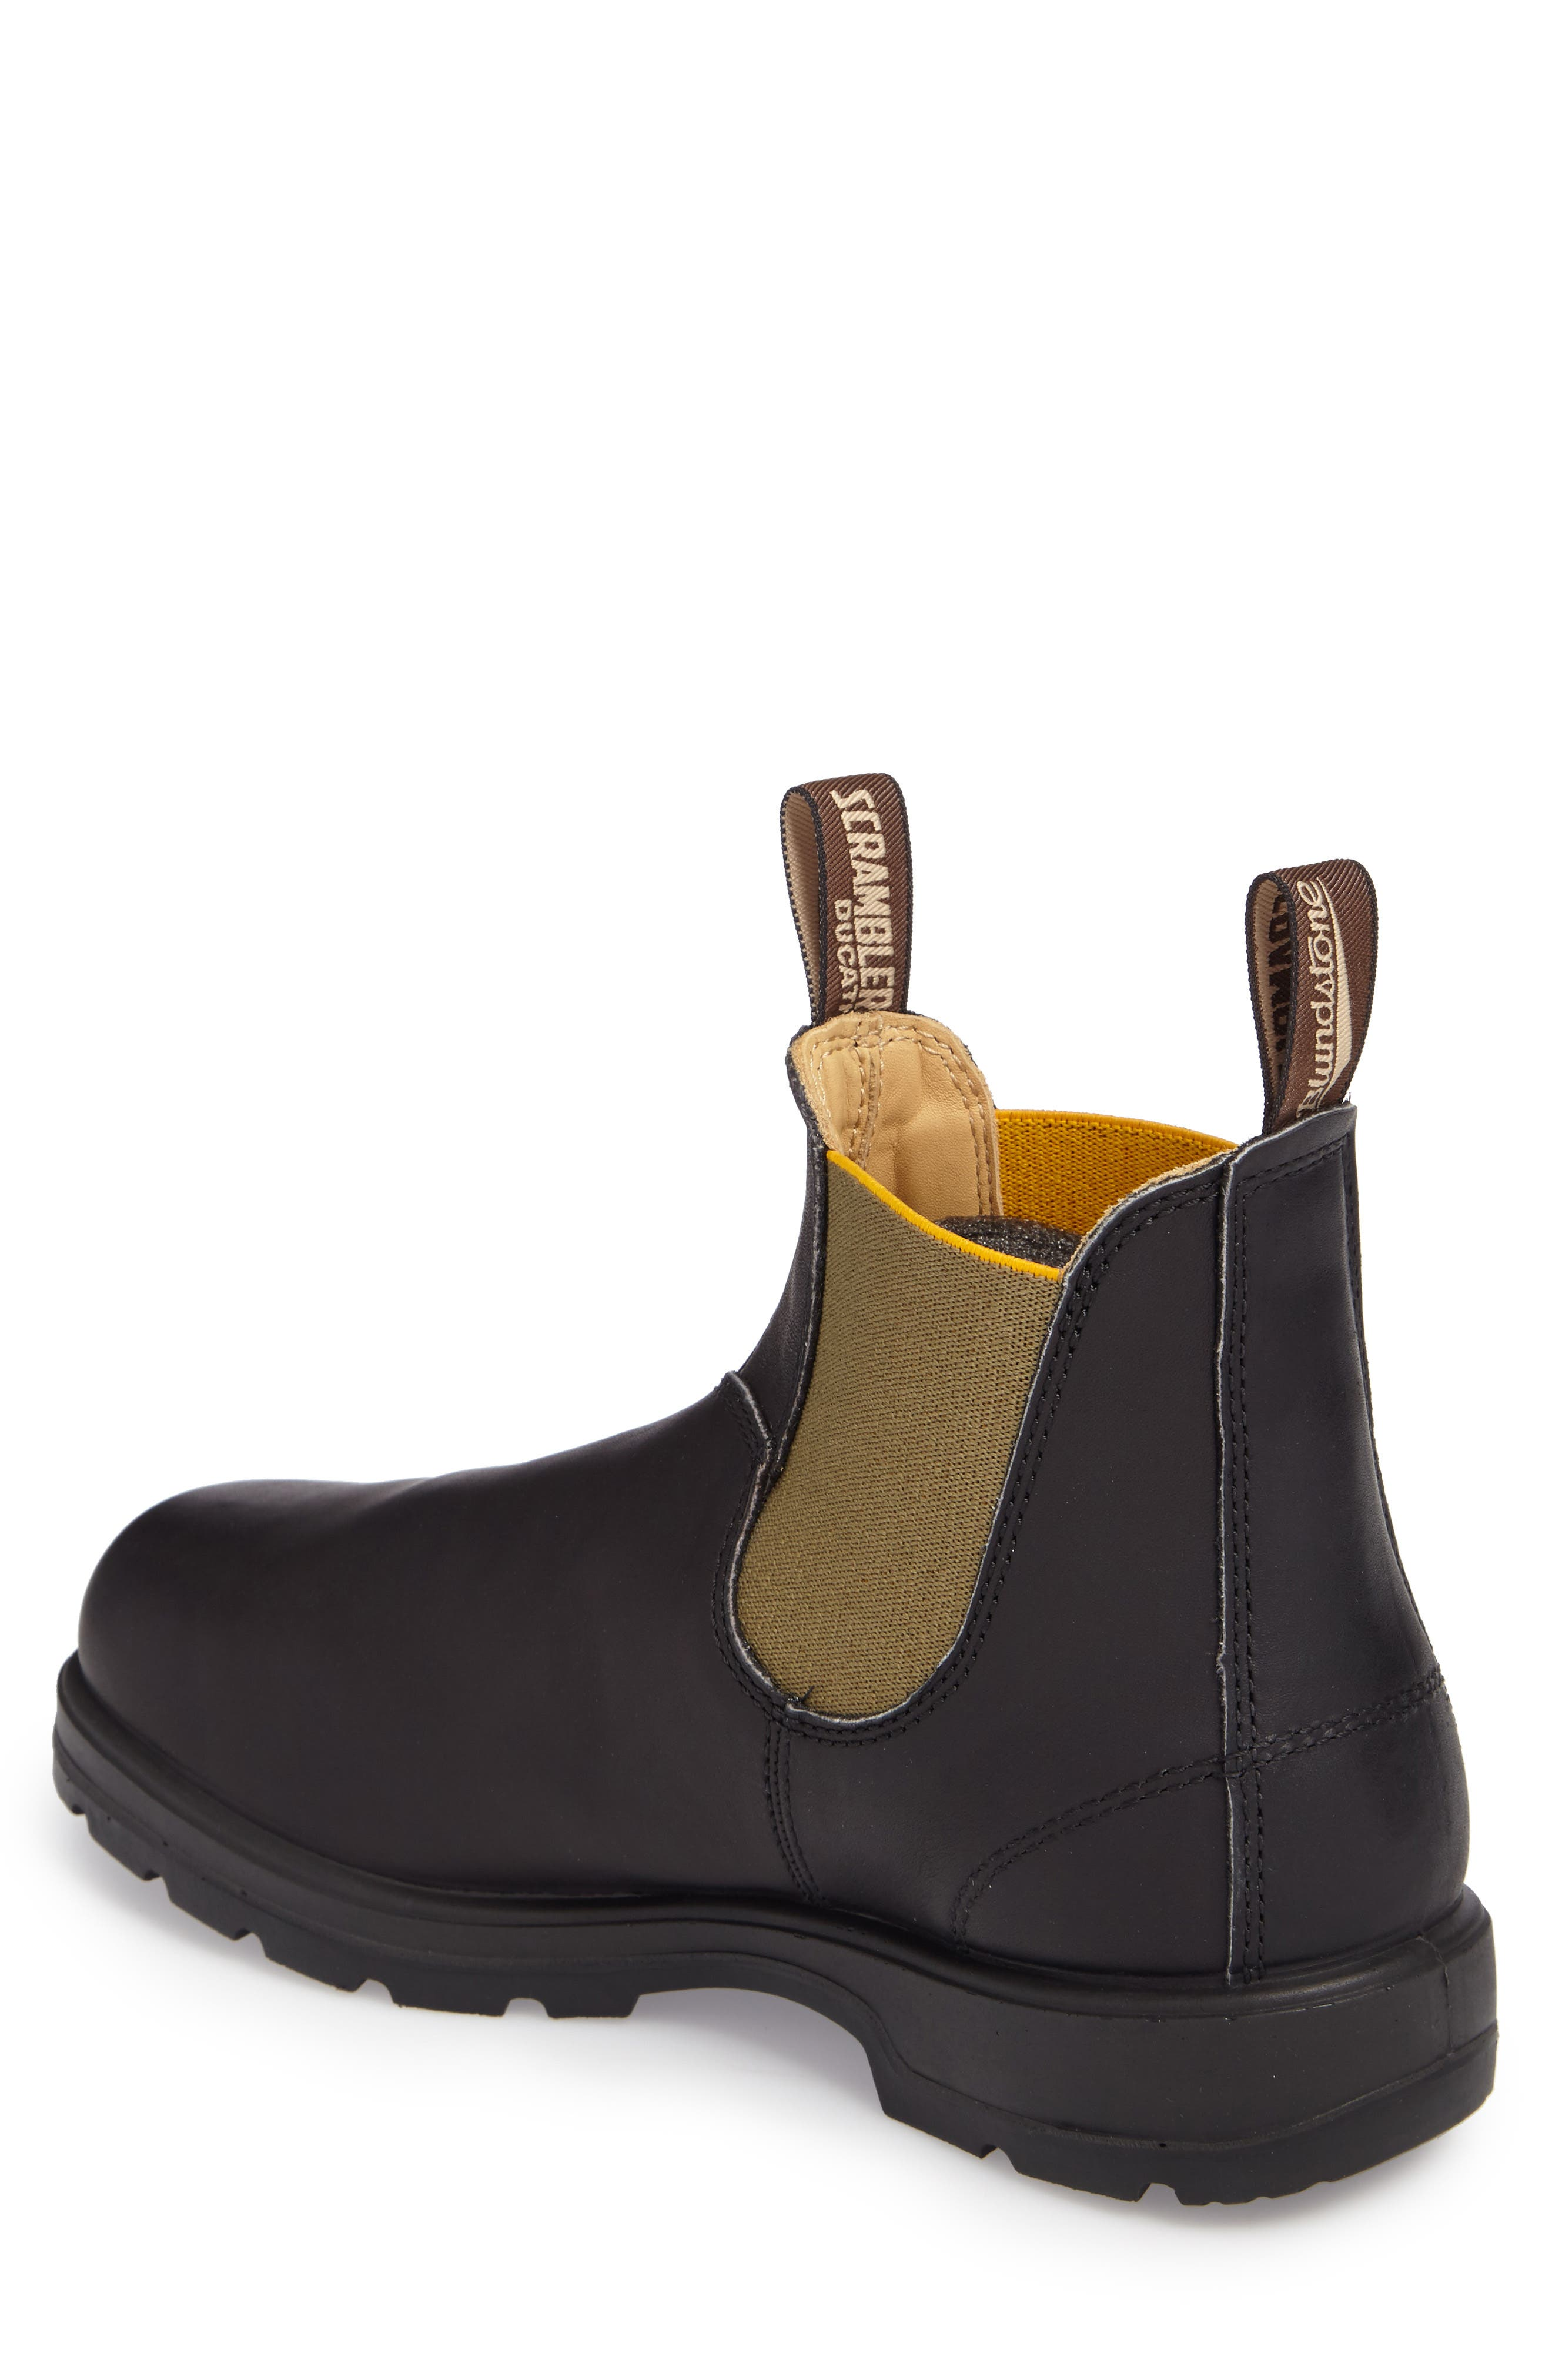 Alternate Image 2  - Blundstone Footwear Chelsea Boot